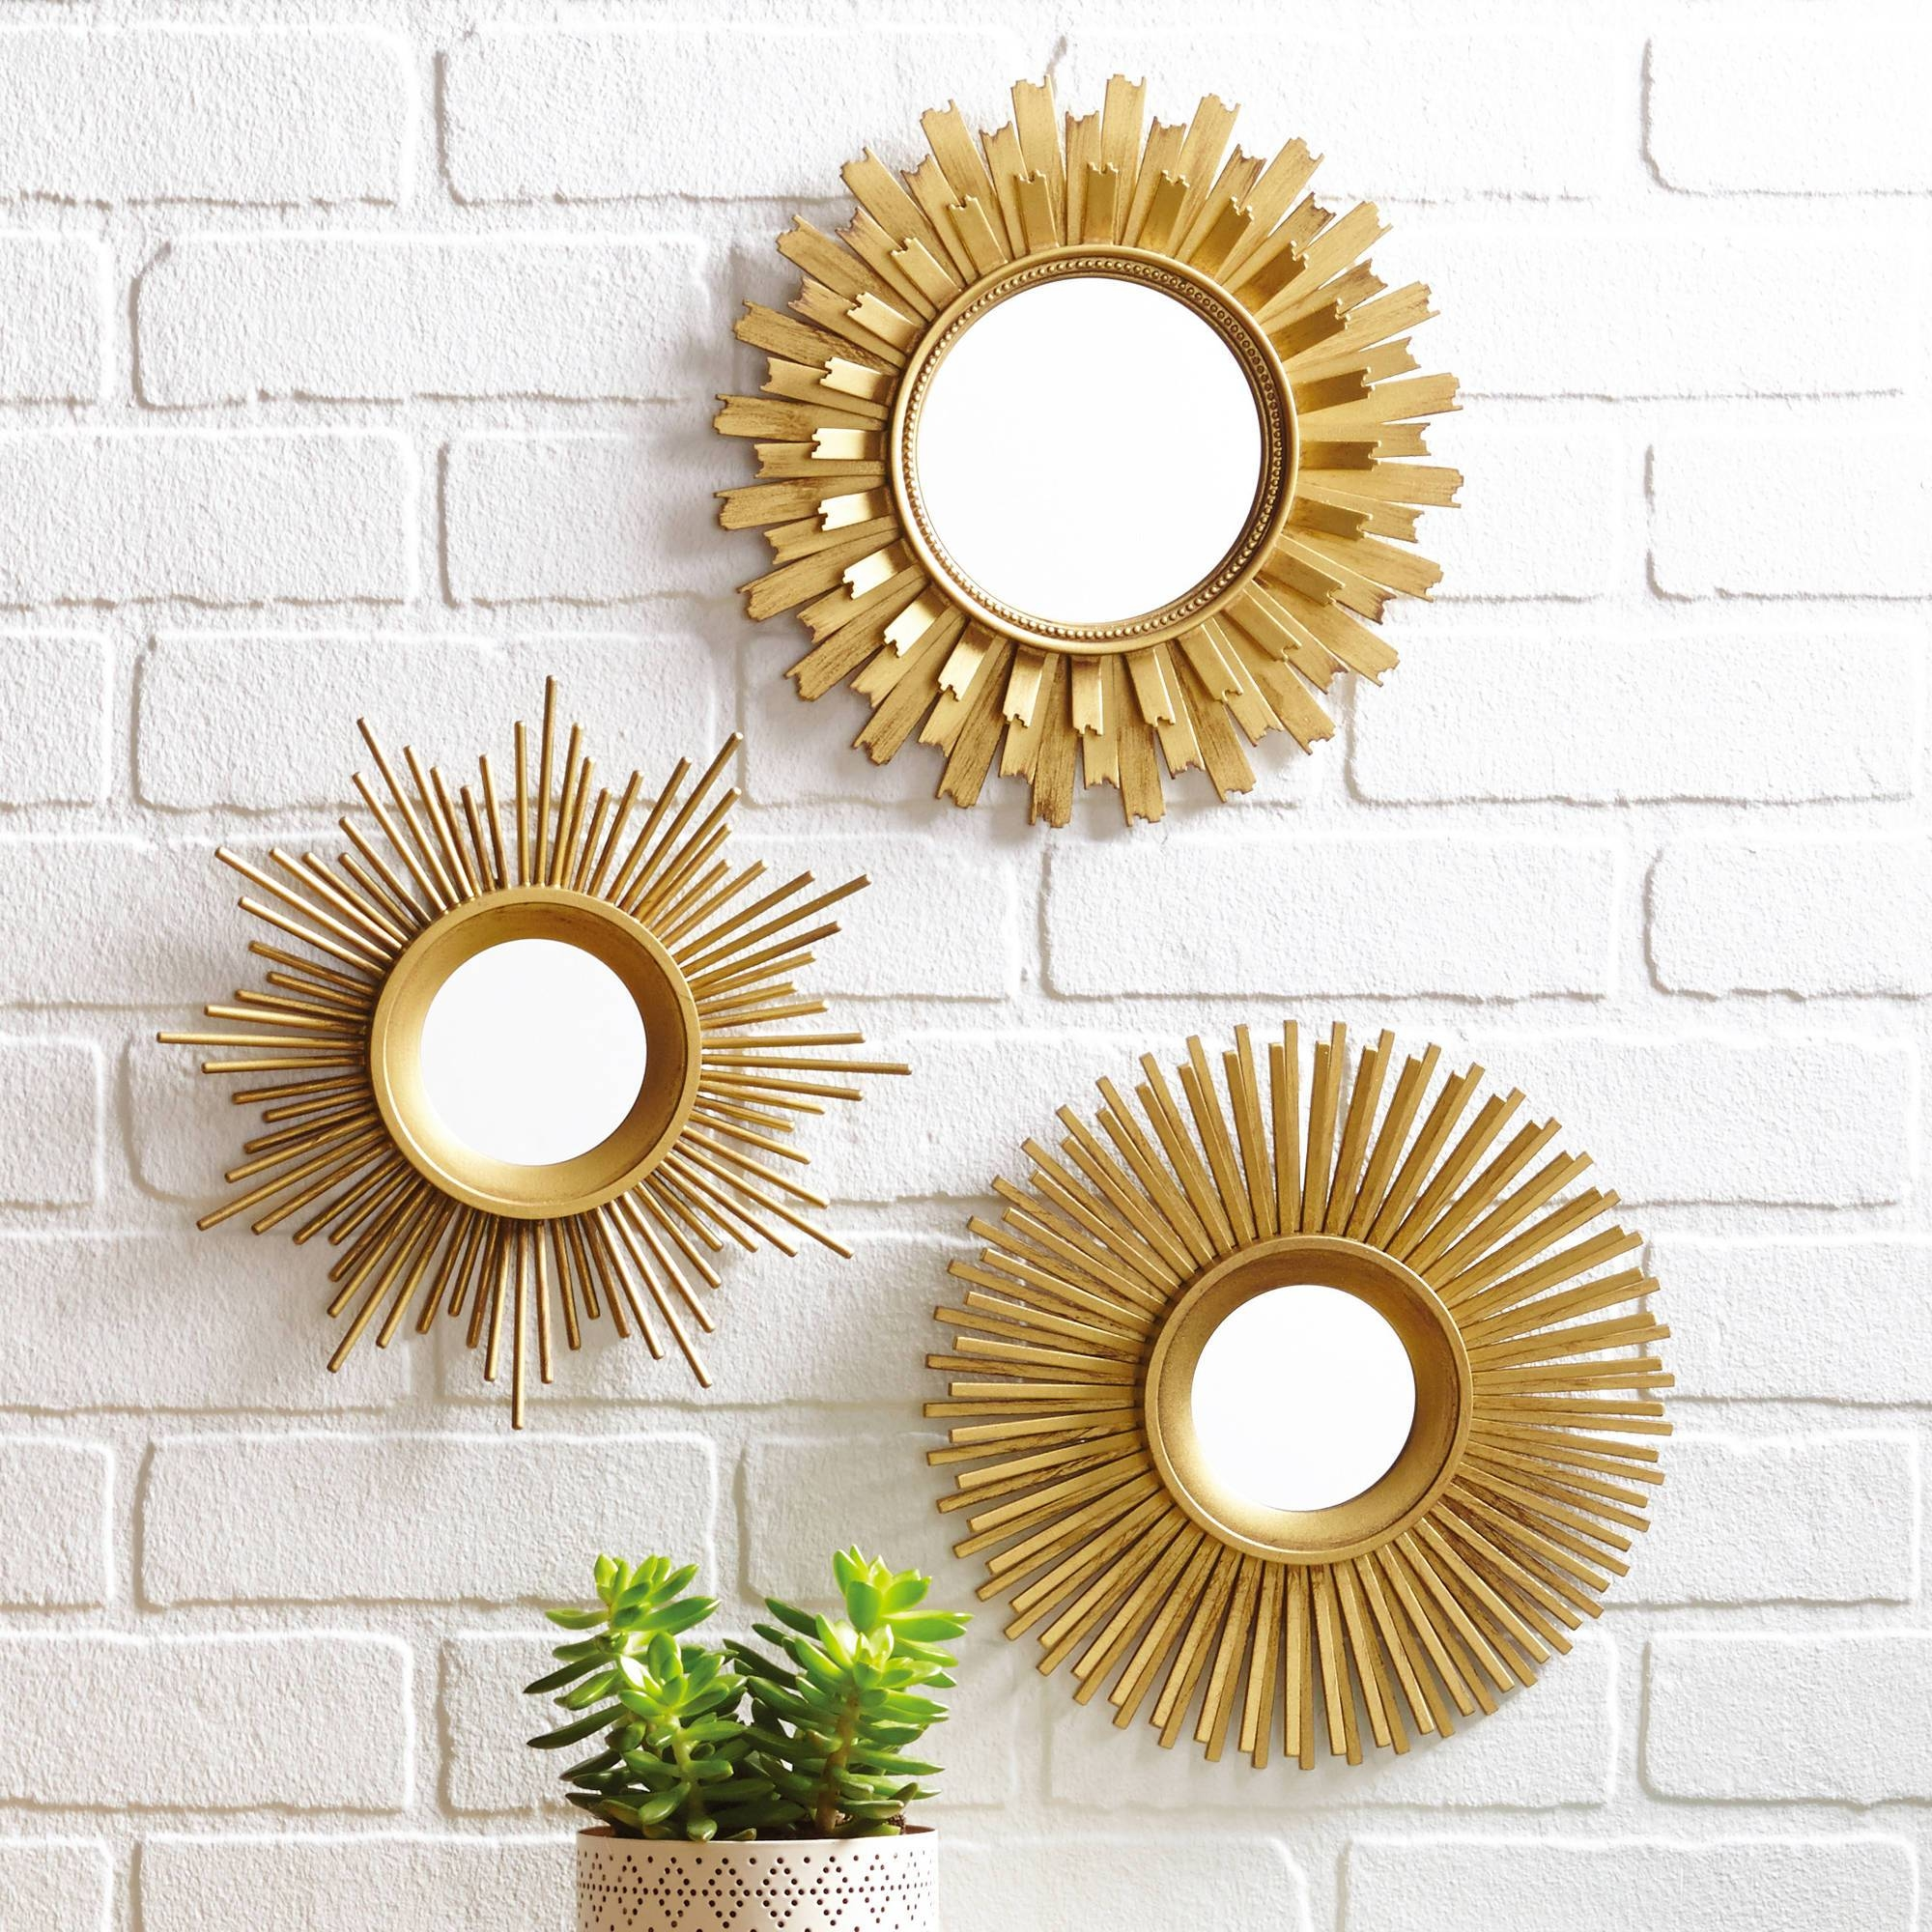 Small Round Wall Mirrors 139 Unique Decoration And Small Round regarding Unique Round Mirrors (Image 13 of 15)